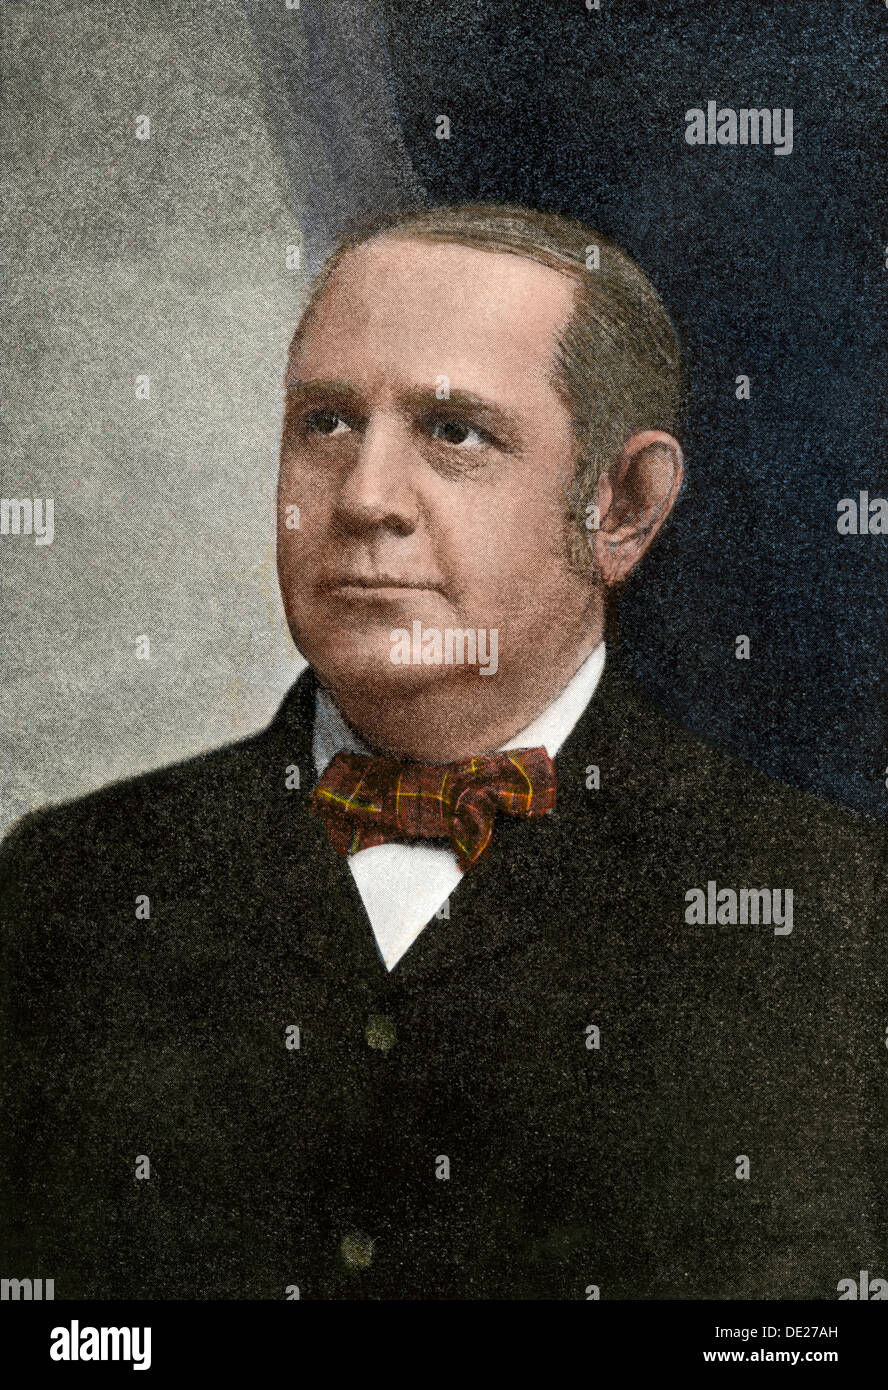 Senator Mark Hanna, Chairman of the Republican National Committee, 1901. Hand-colored halftone reproduction of a photograph - Stock Image